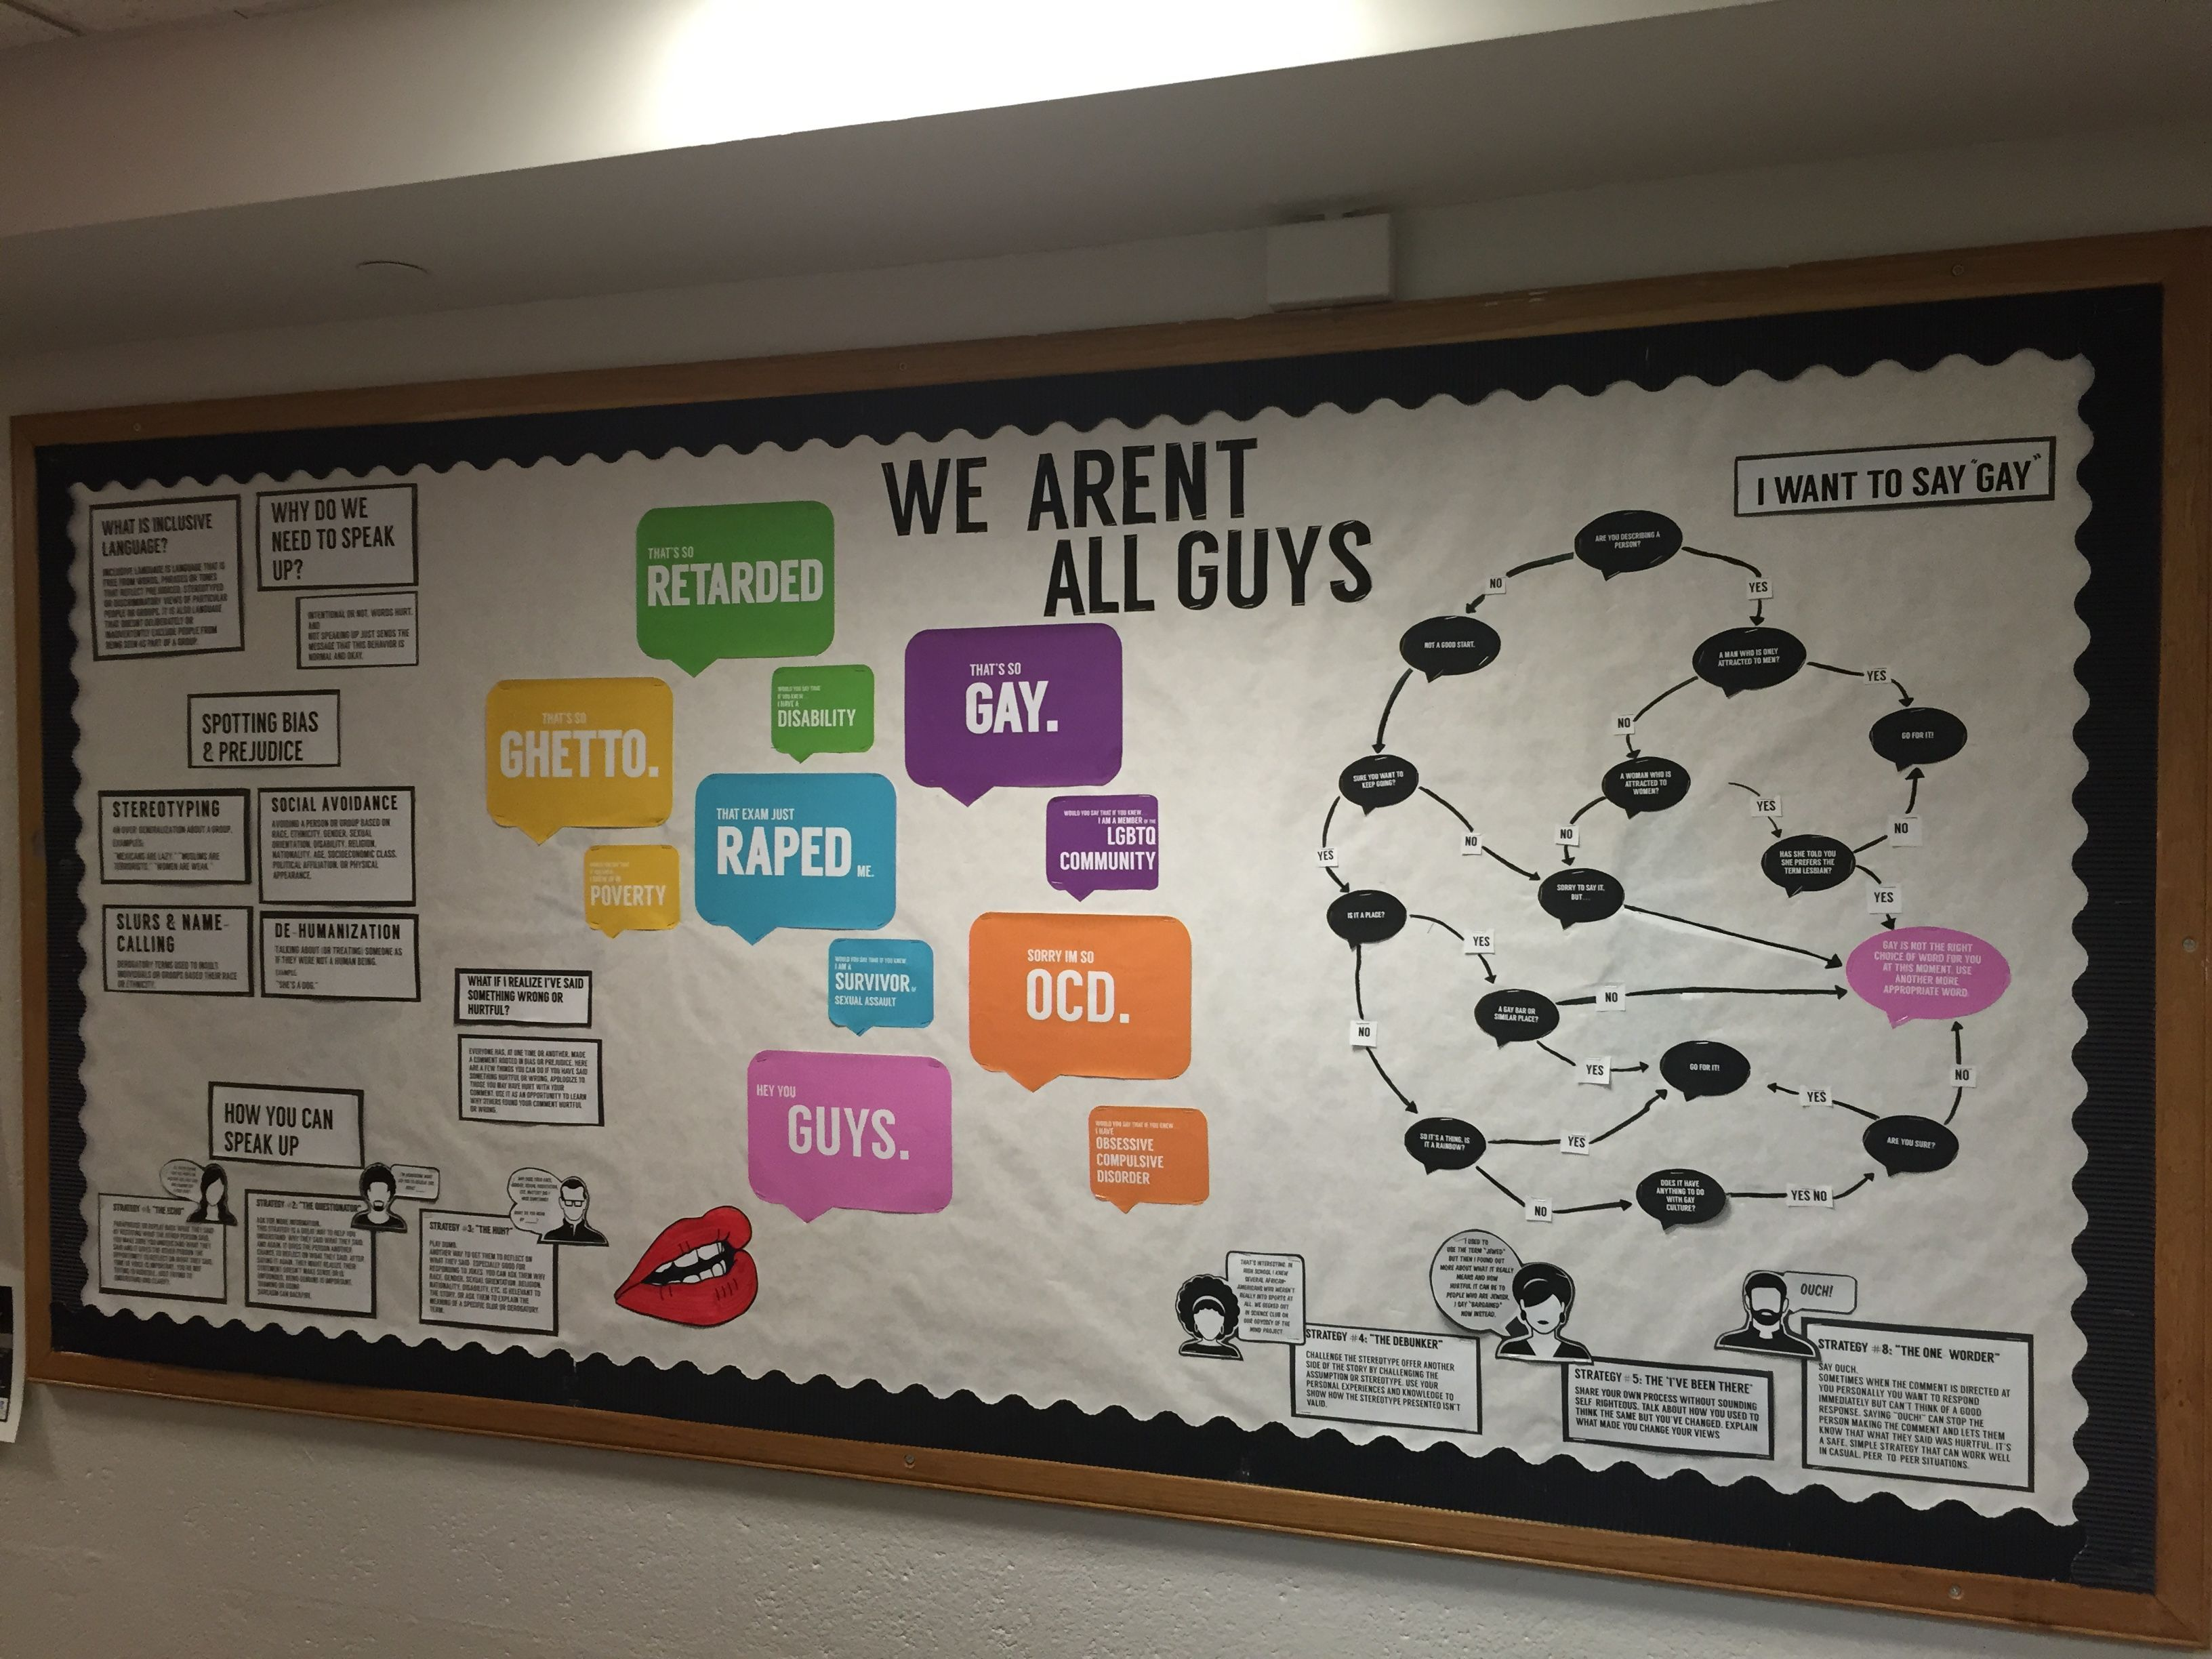 Ra Bulletin Board On Social Justice And Inclusive Language